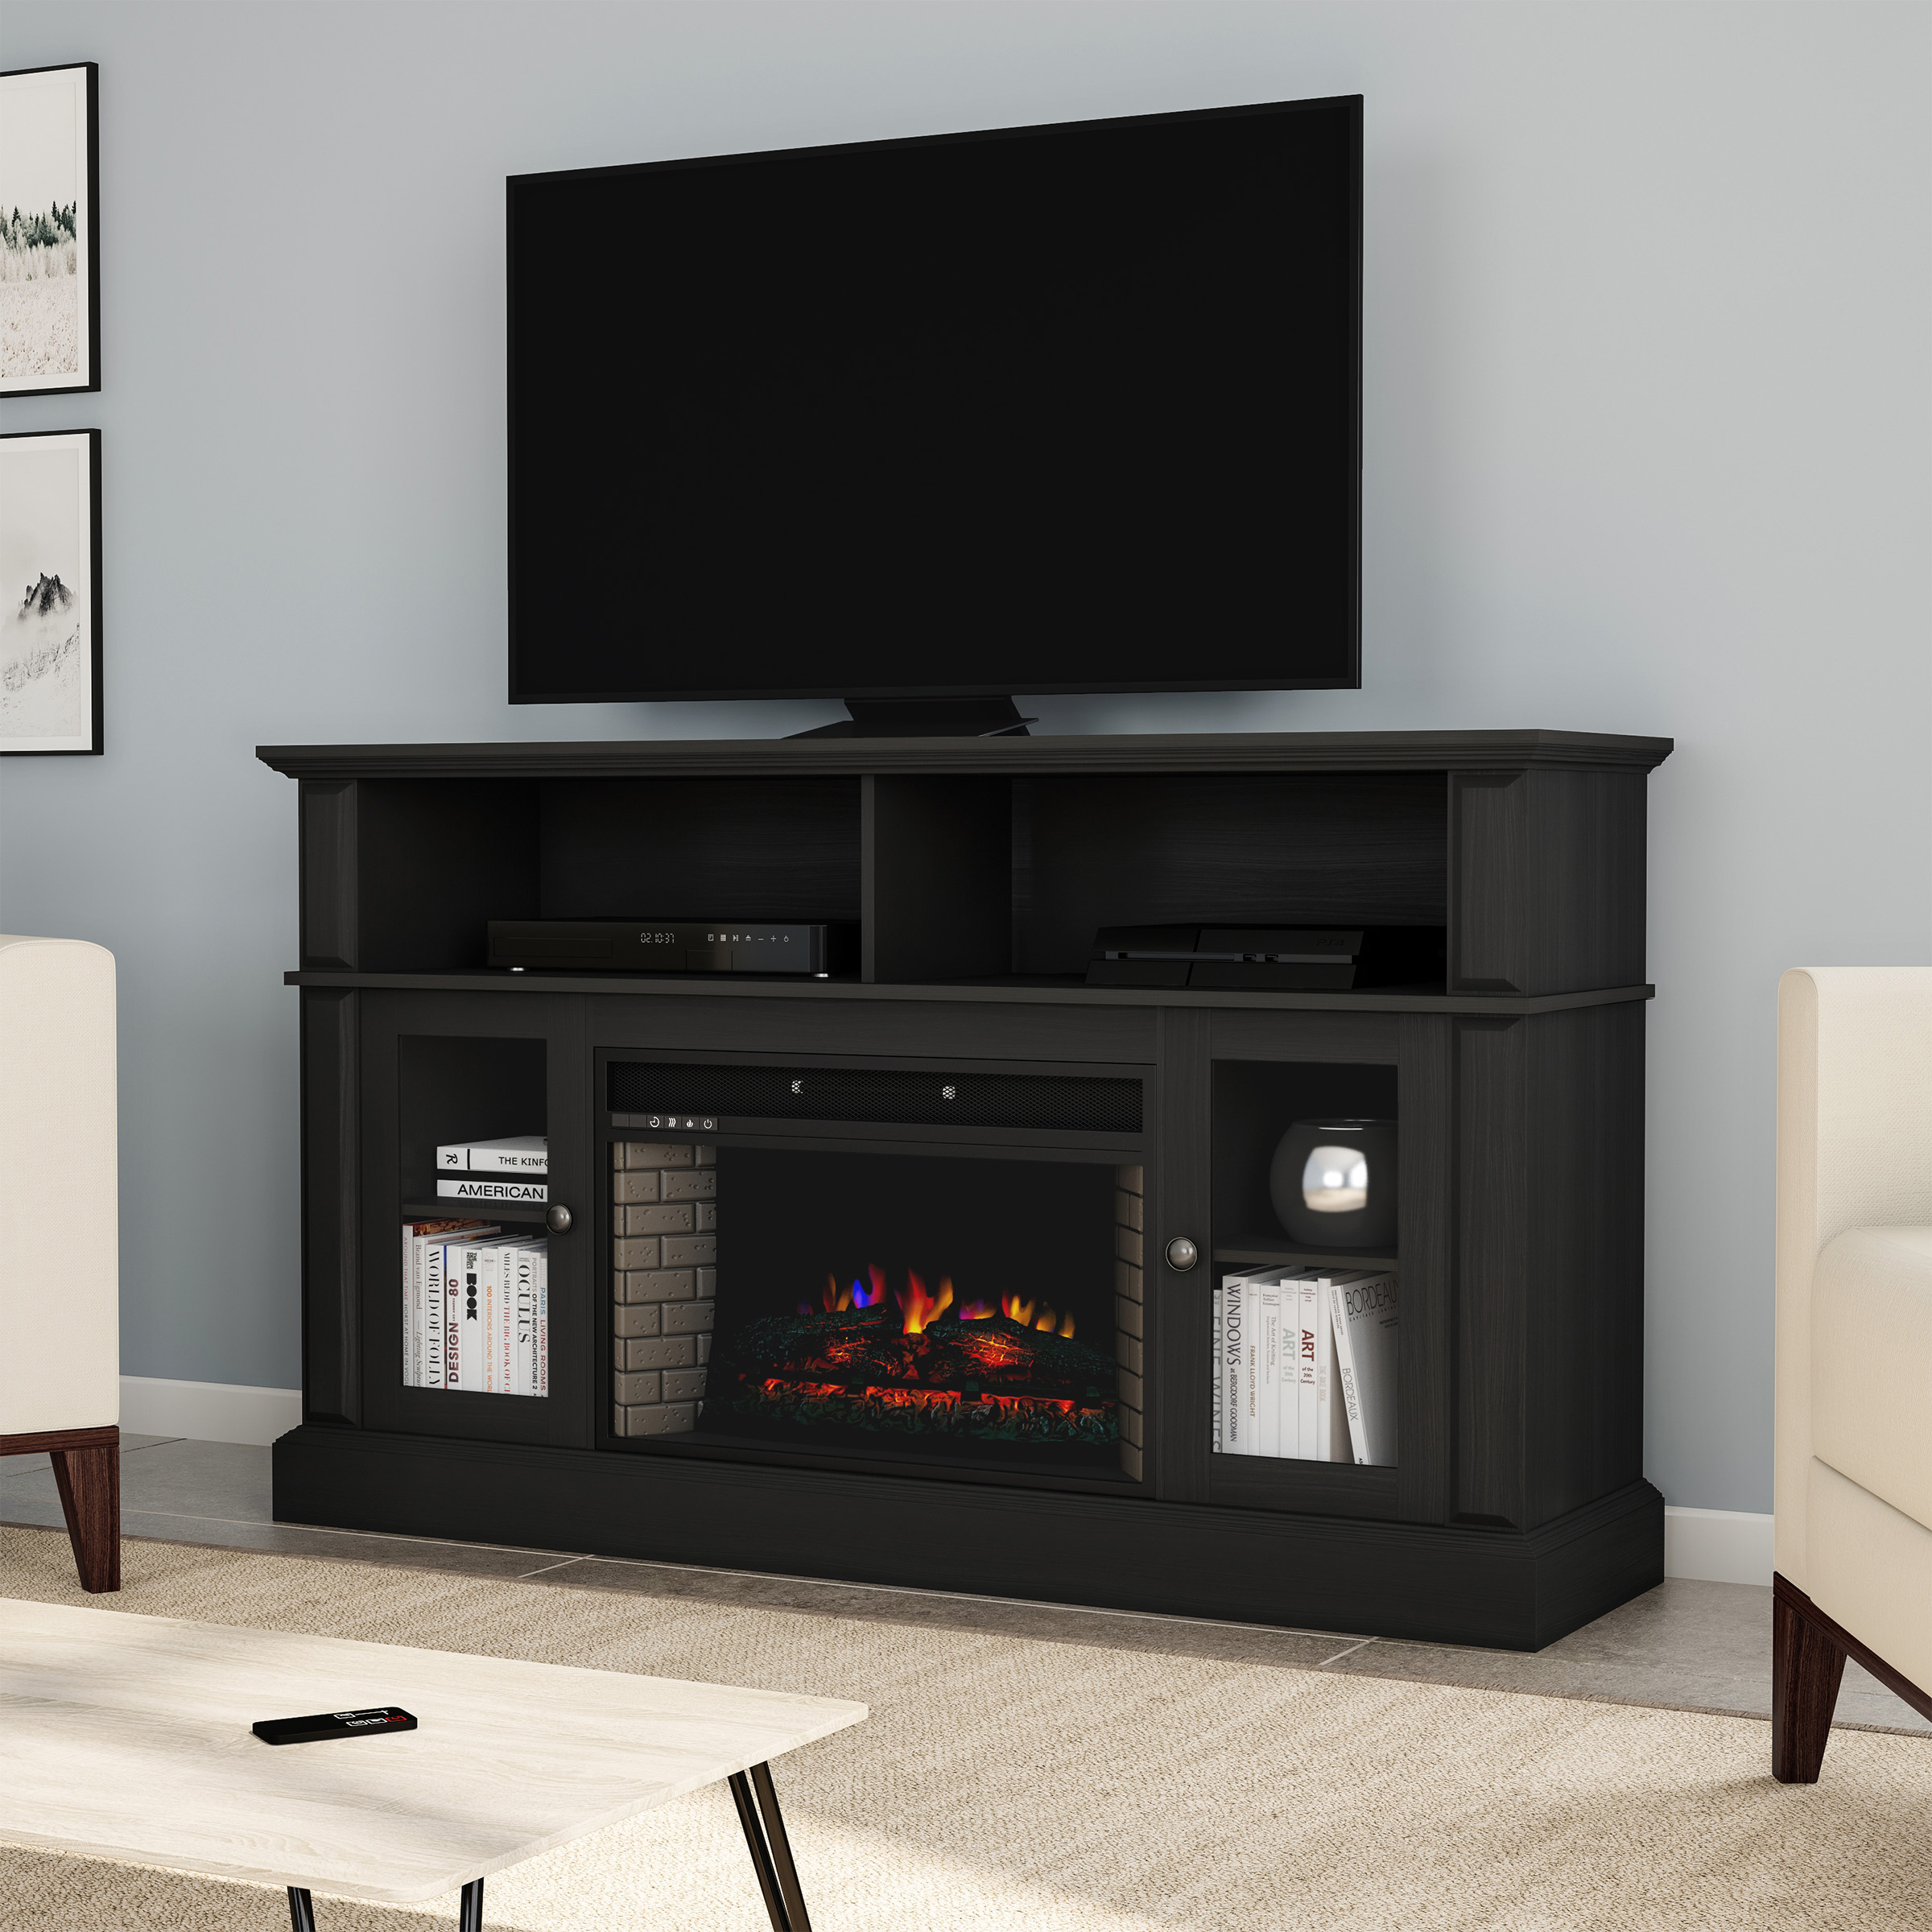 65 Inch Tv Stand With Fireplace Ideas On Foter